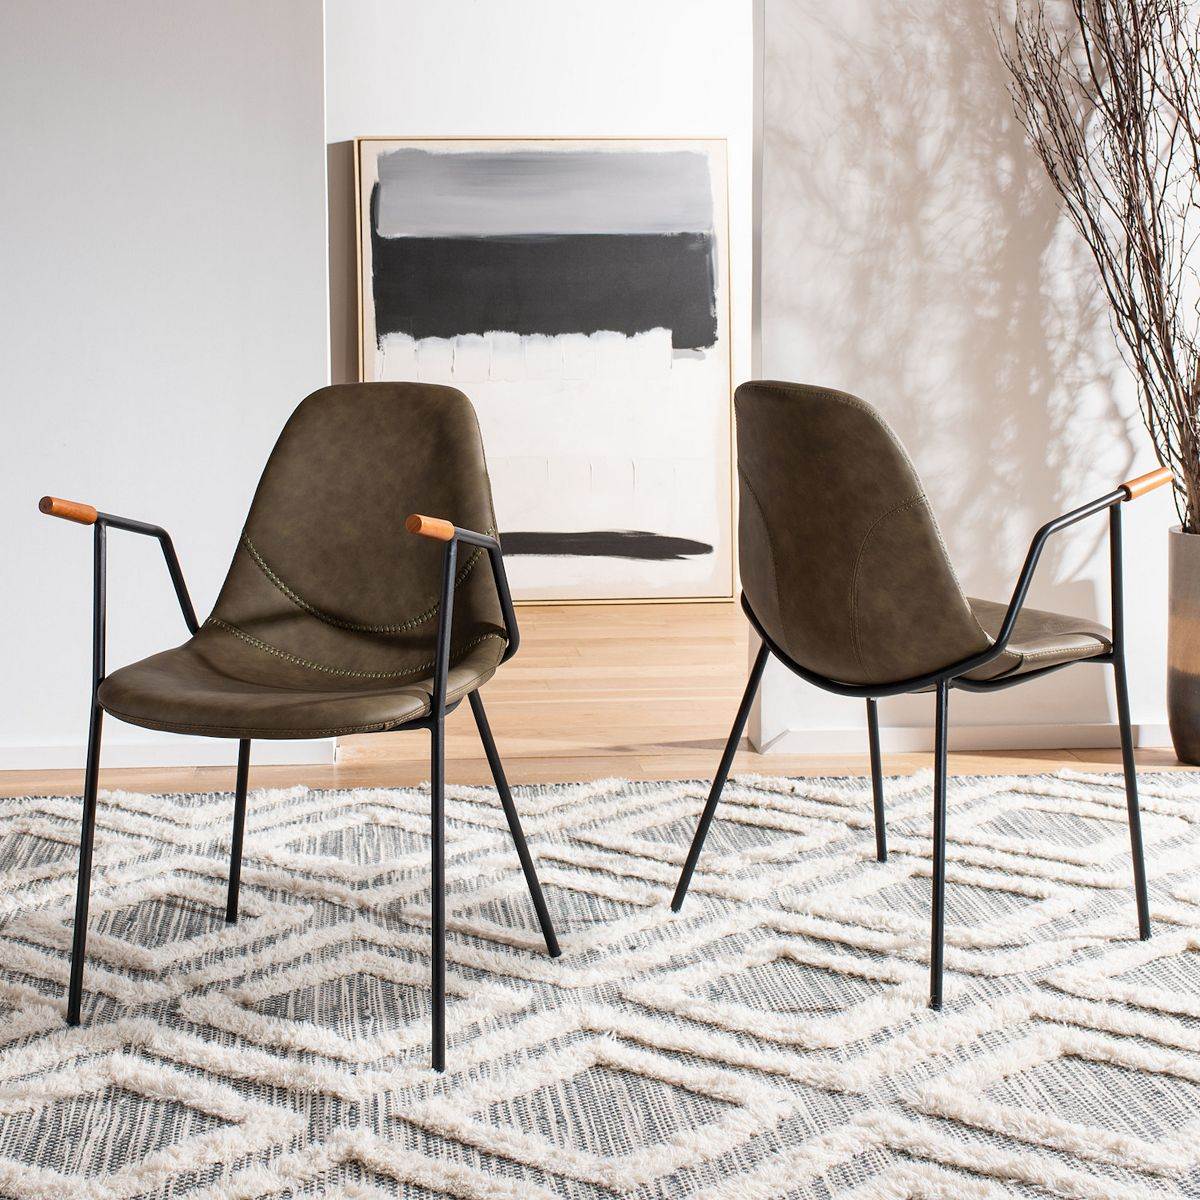 Safavieh Tanner Mid-Century Dining Chair 2-Piece Set 26Tm9